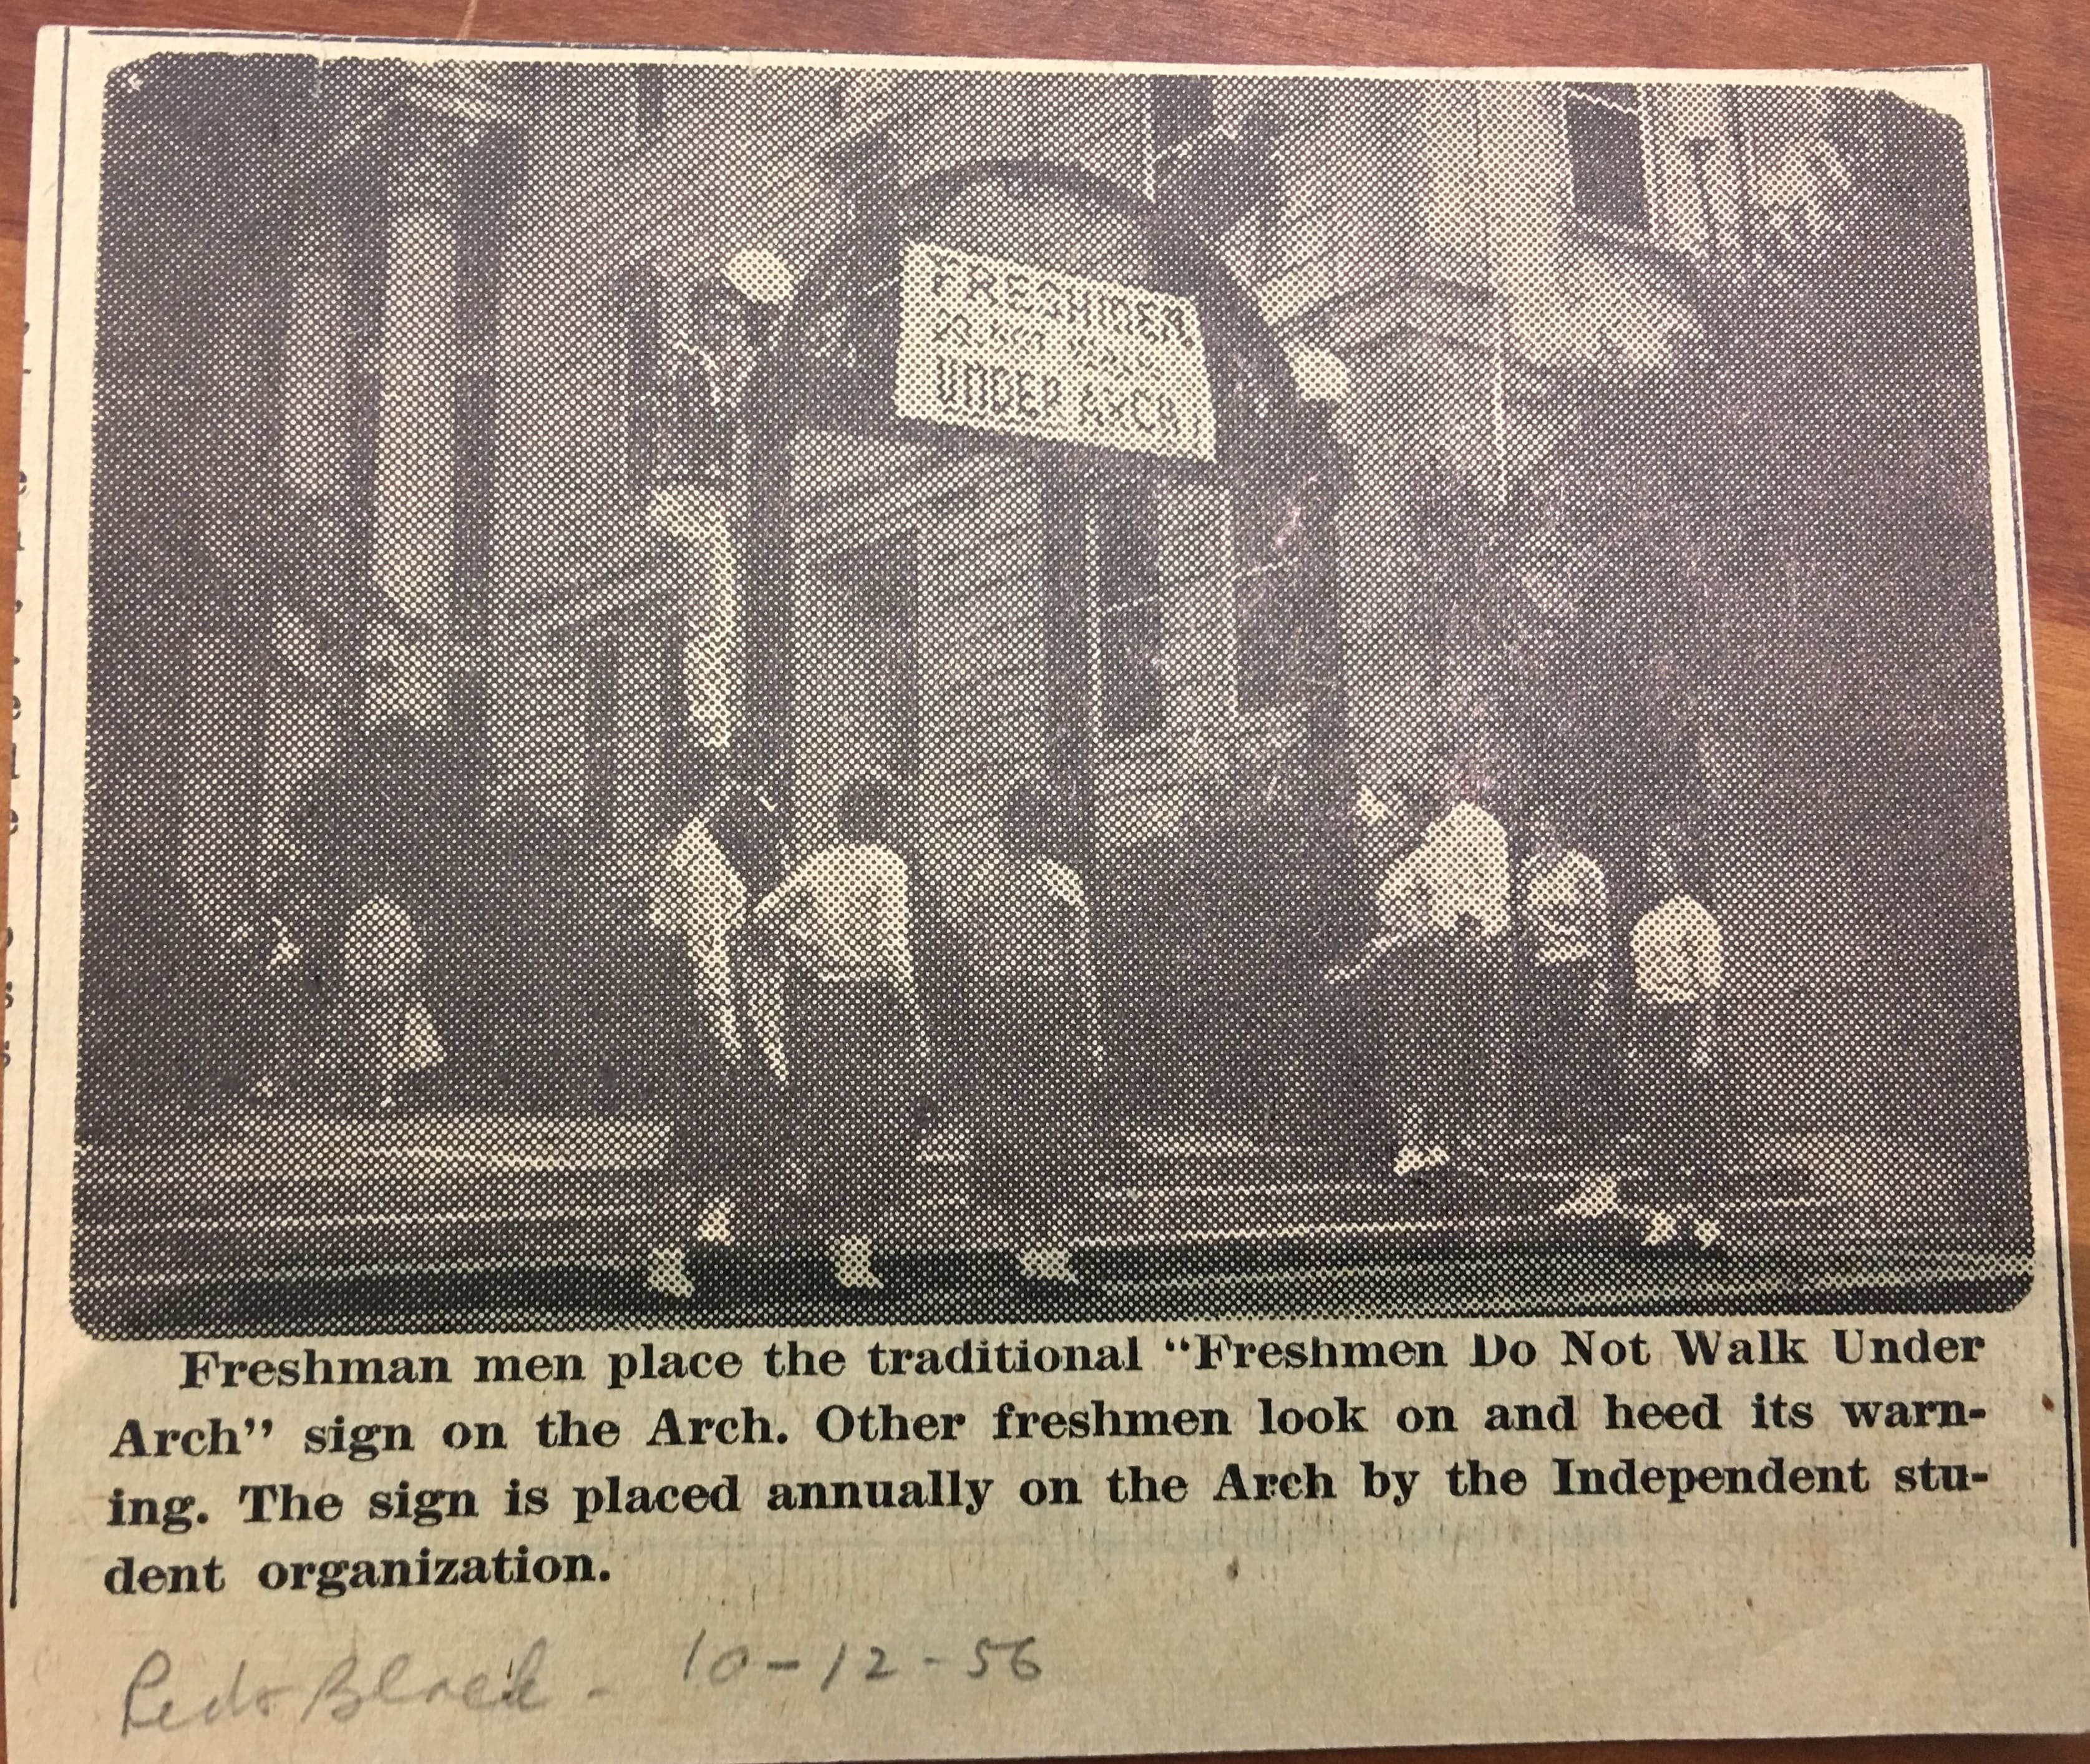 A historic photo from 1956 showing students placing a sign on the Arch warning freshmen to avoid walking under it